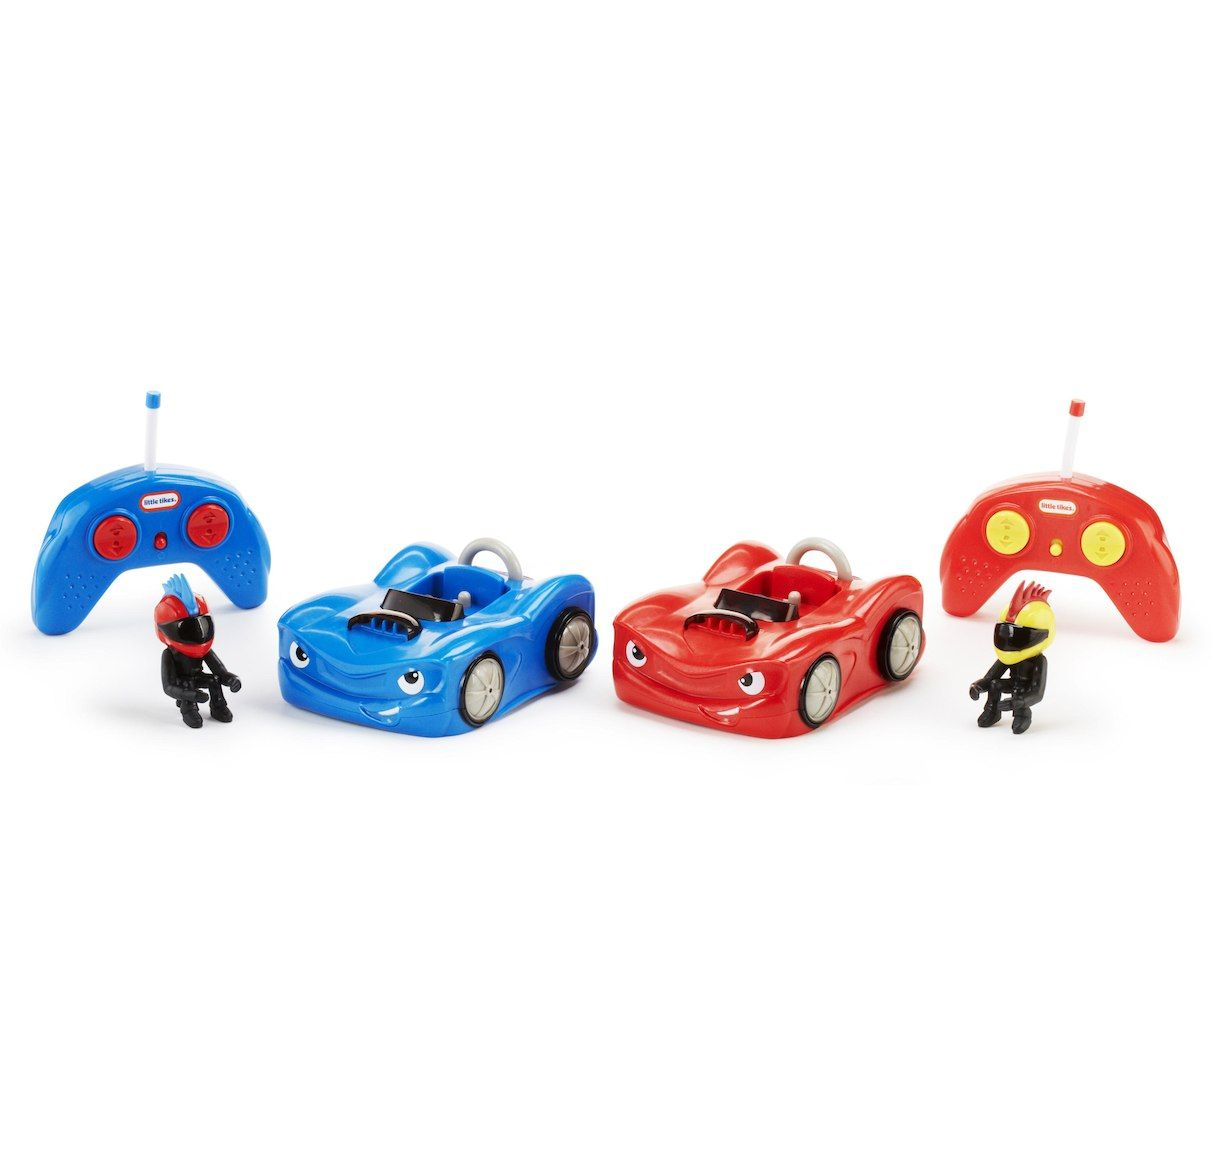 Little Tikes Remote Control Bumper Cars Set Cool Toys For Boys